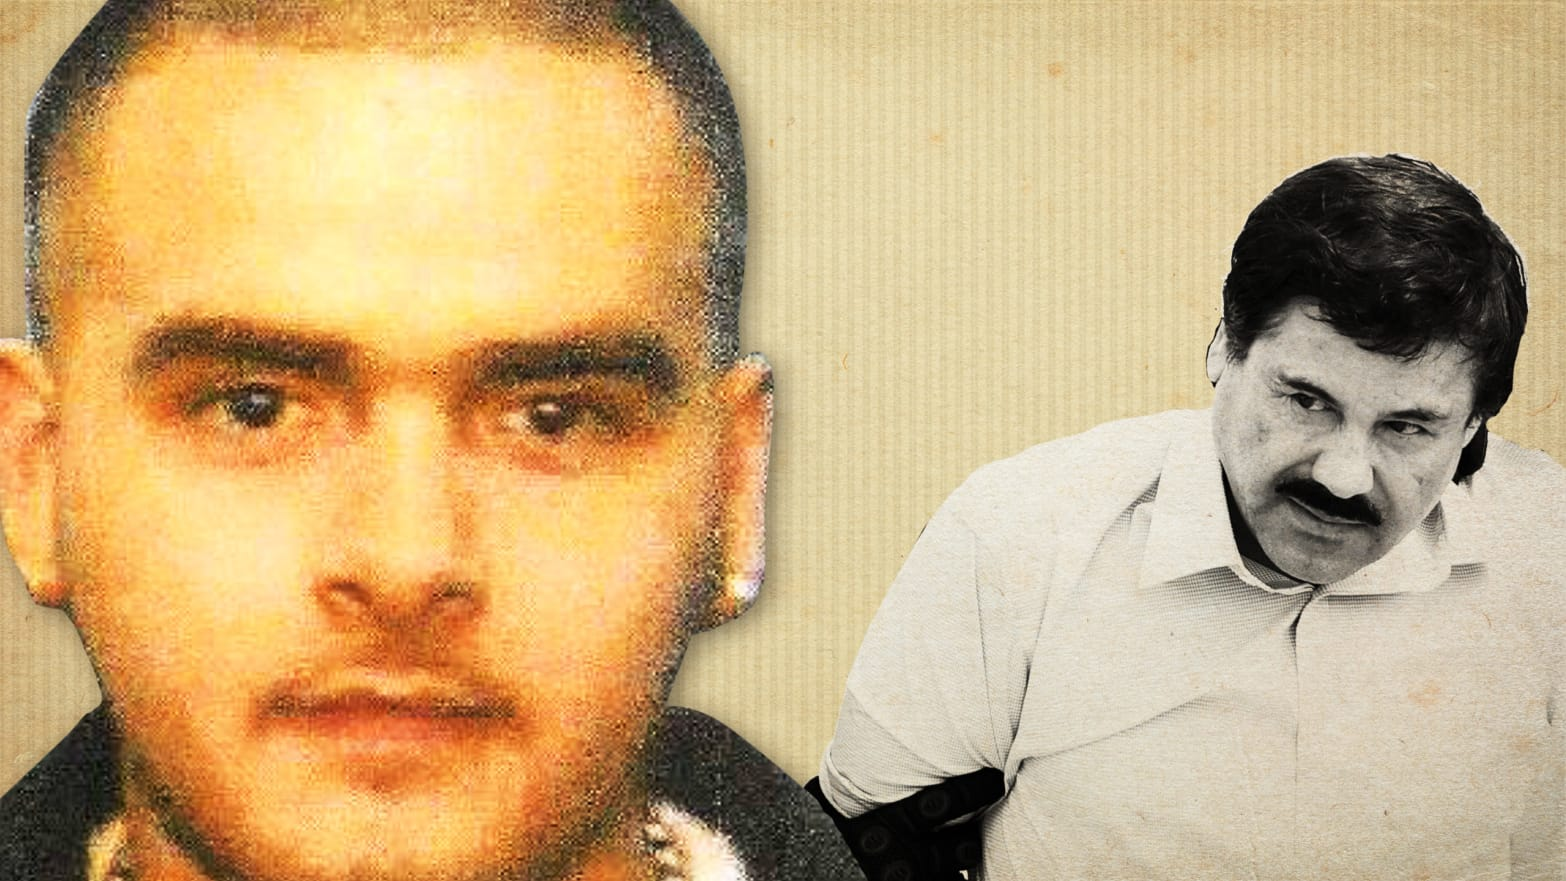 On the Witness Stand, El Chapo Informant Pedro Flores Is